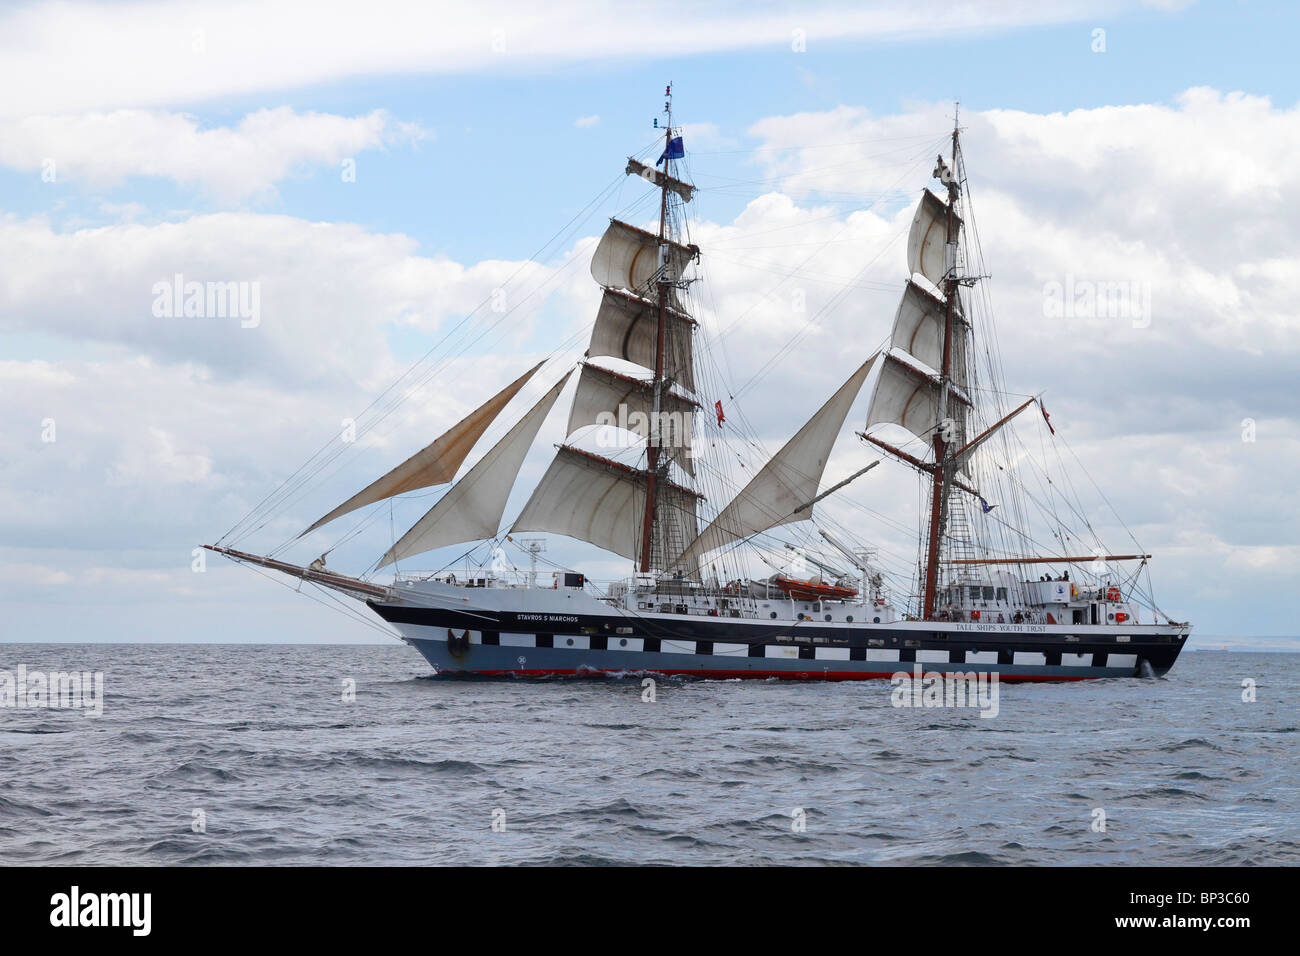 The two masted brig, tall sailing ship, of Stavros S Niarchos, under sail at Hartlepool 2010 Tall Ships Race, Teesside, Stock Photo